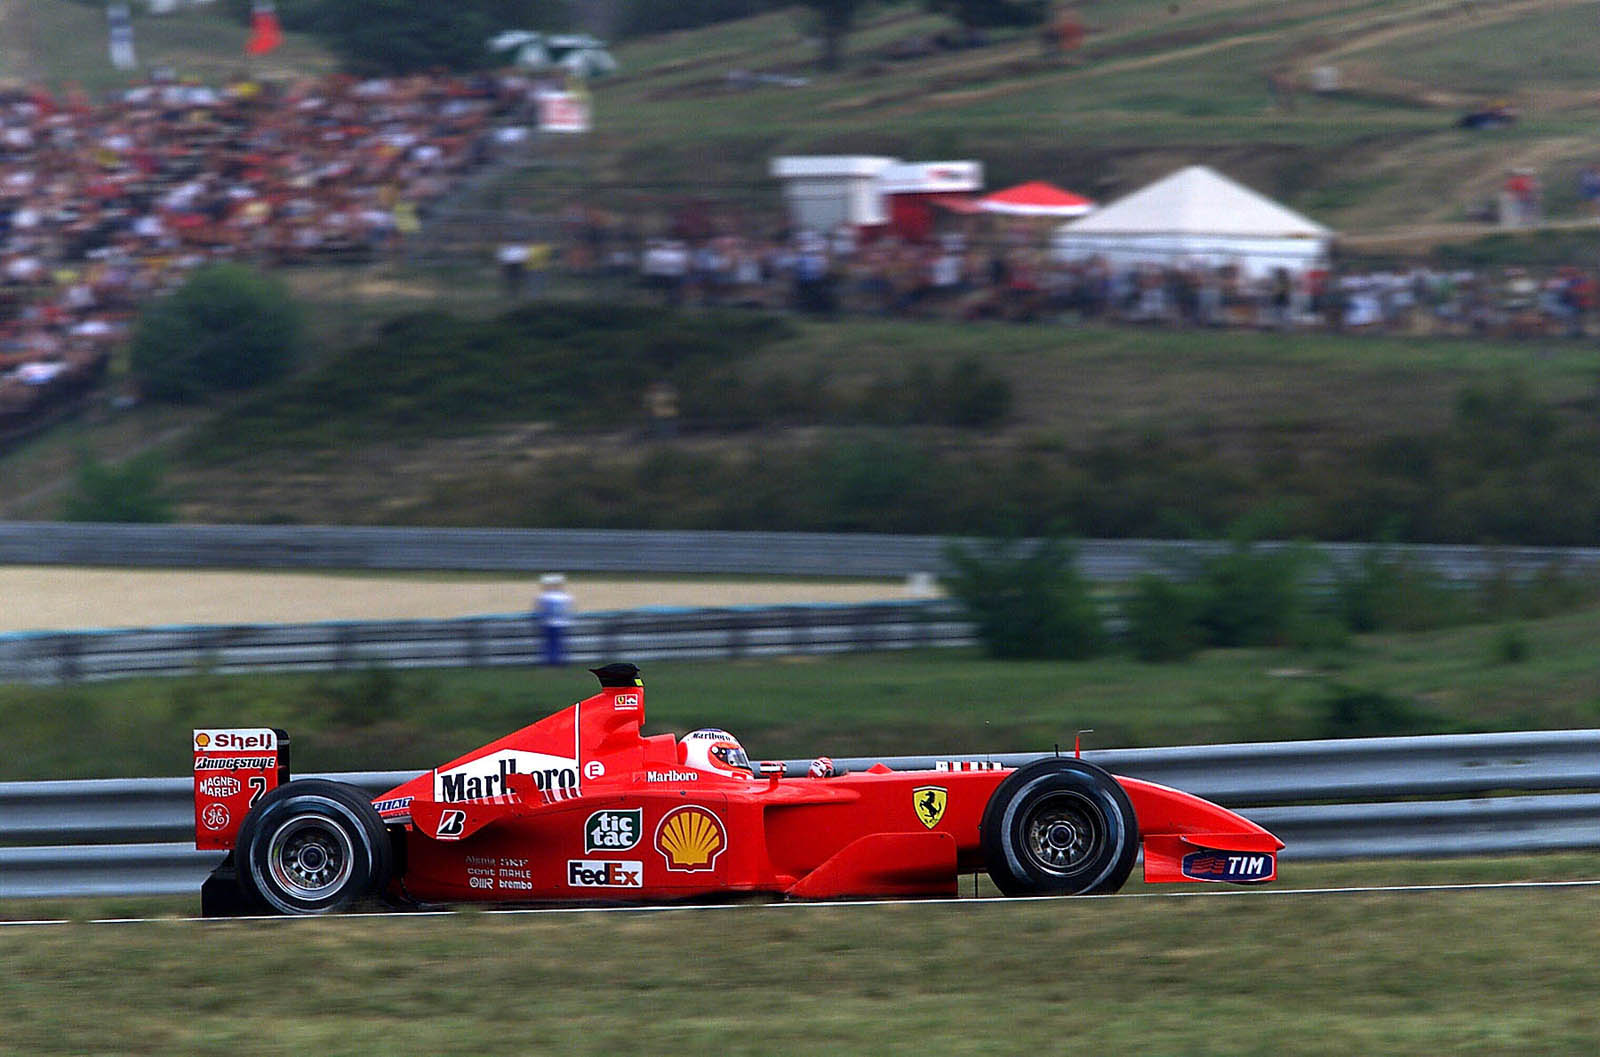 ferrari f2001 michael schumacher - photo #37